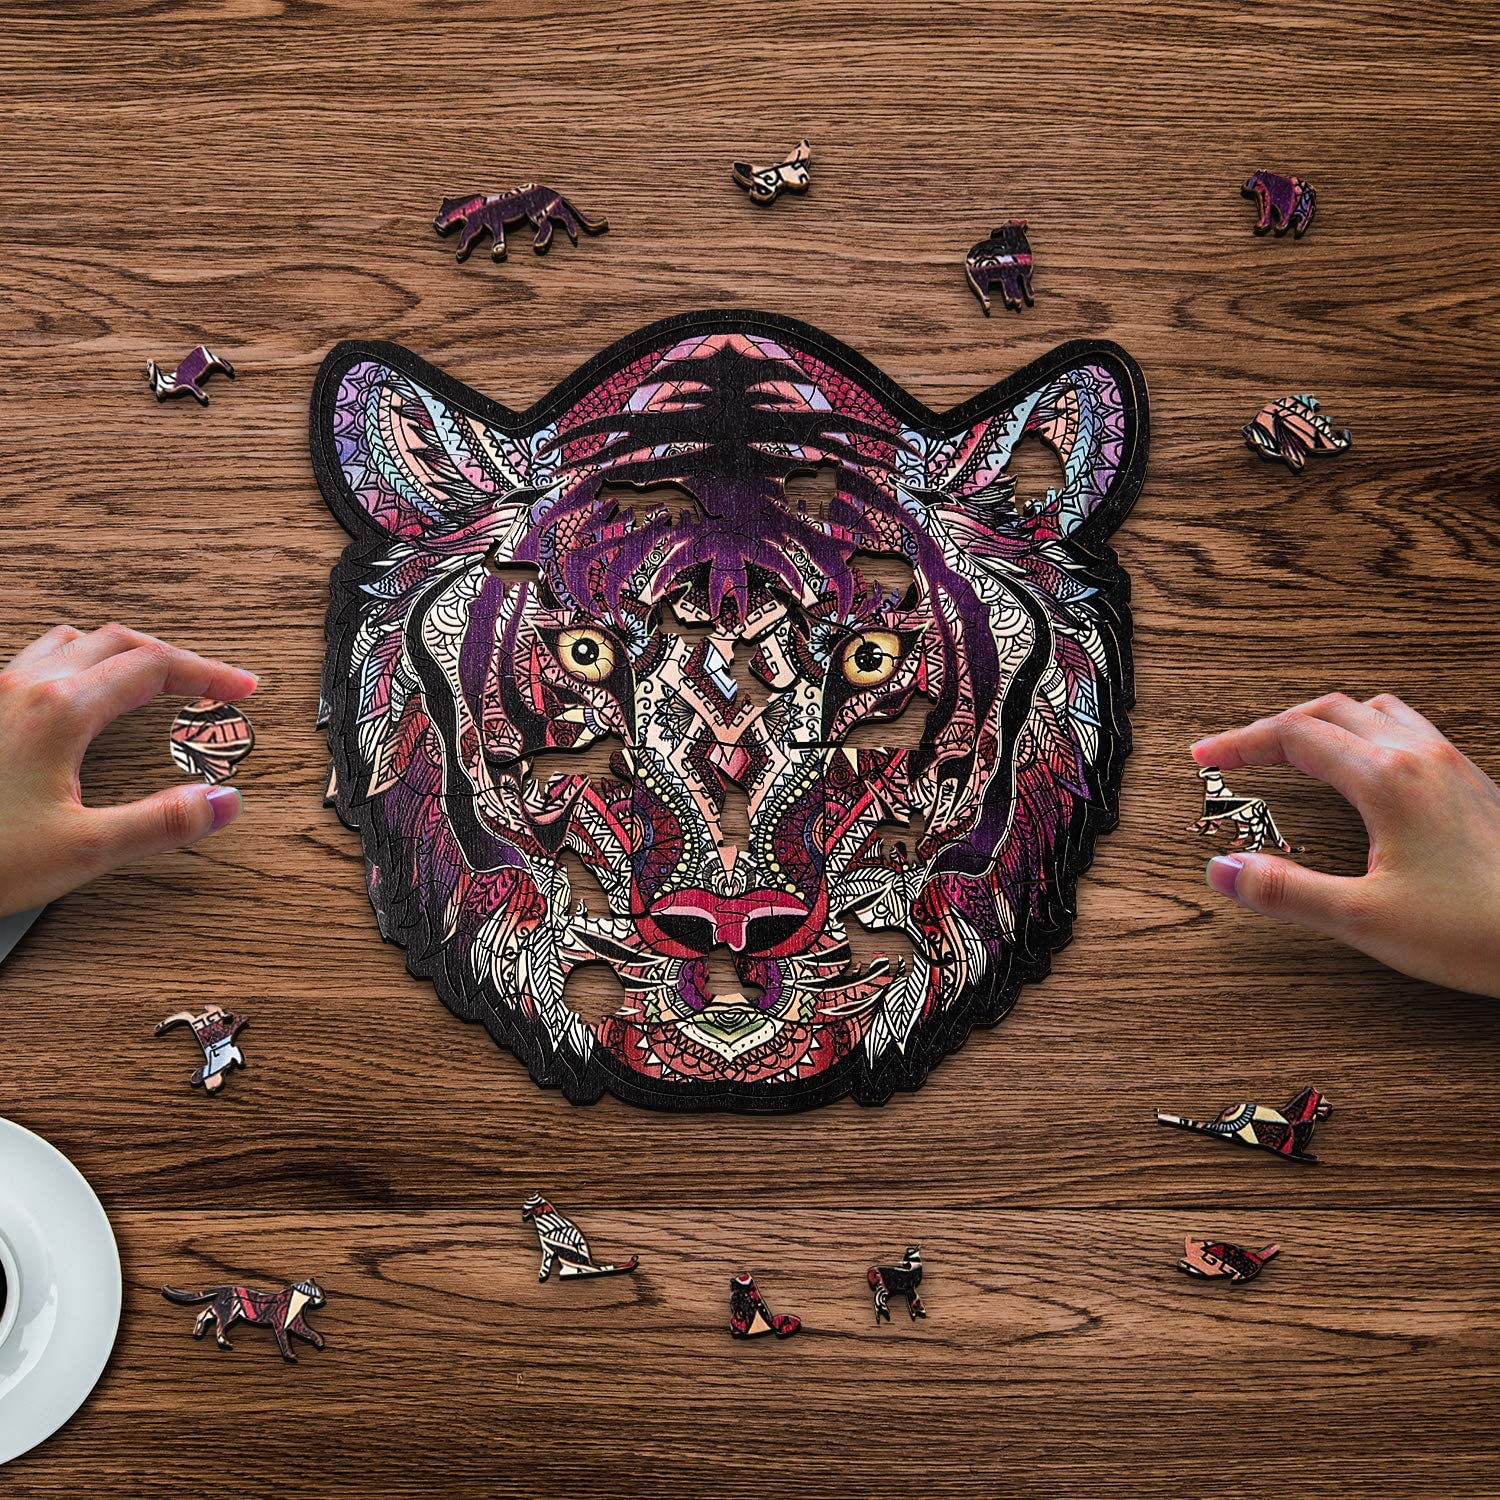 Tiger Creative Gifts for Kids Family Game Play Collection with Wooden Storage Box 7.087.48 Milestar Wooden Jigsaw Puzzles for Adults Unique Animal Shaped Puzzles 168 Pieces